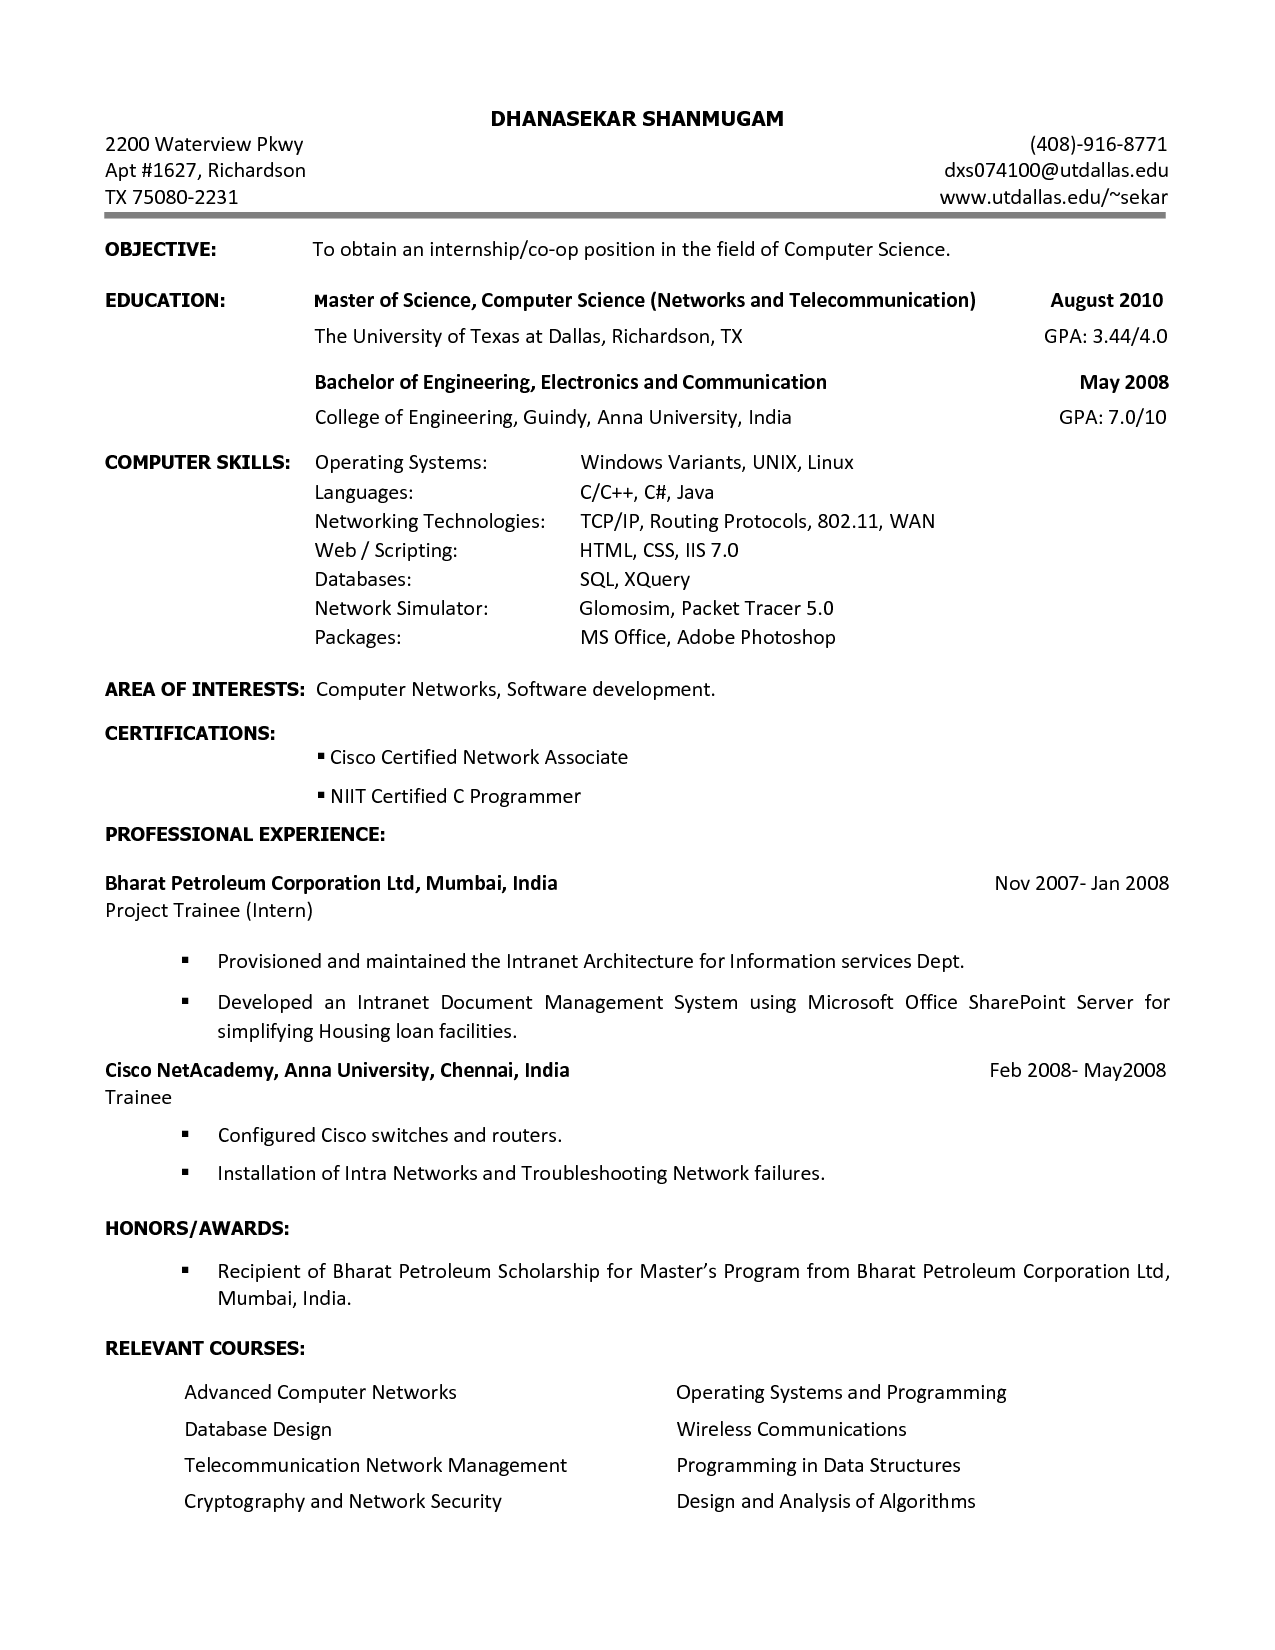 online resume maker for fresher engineer free